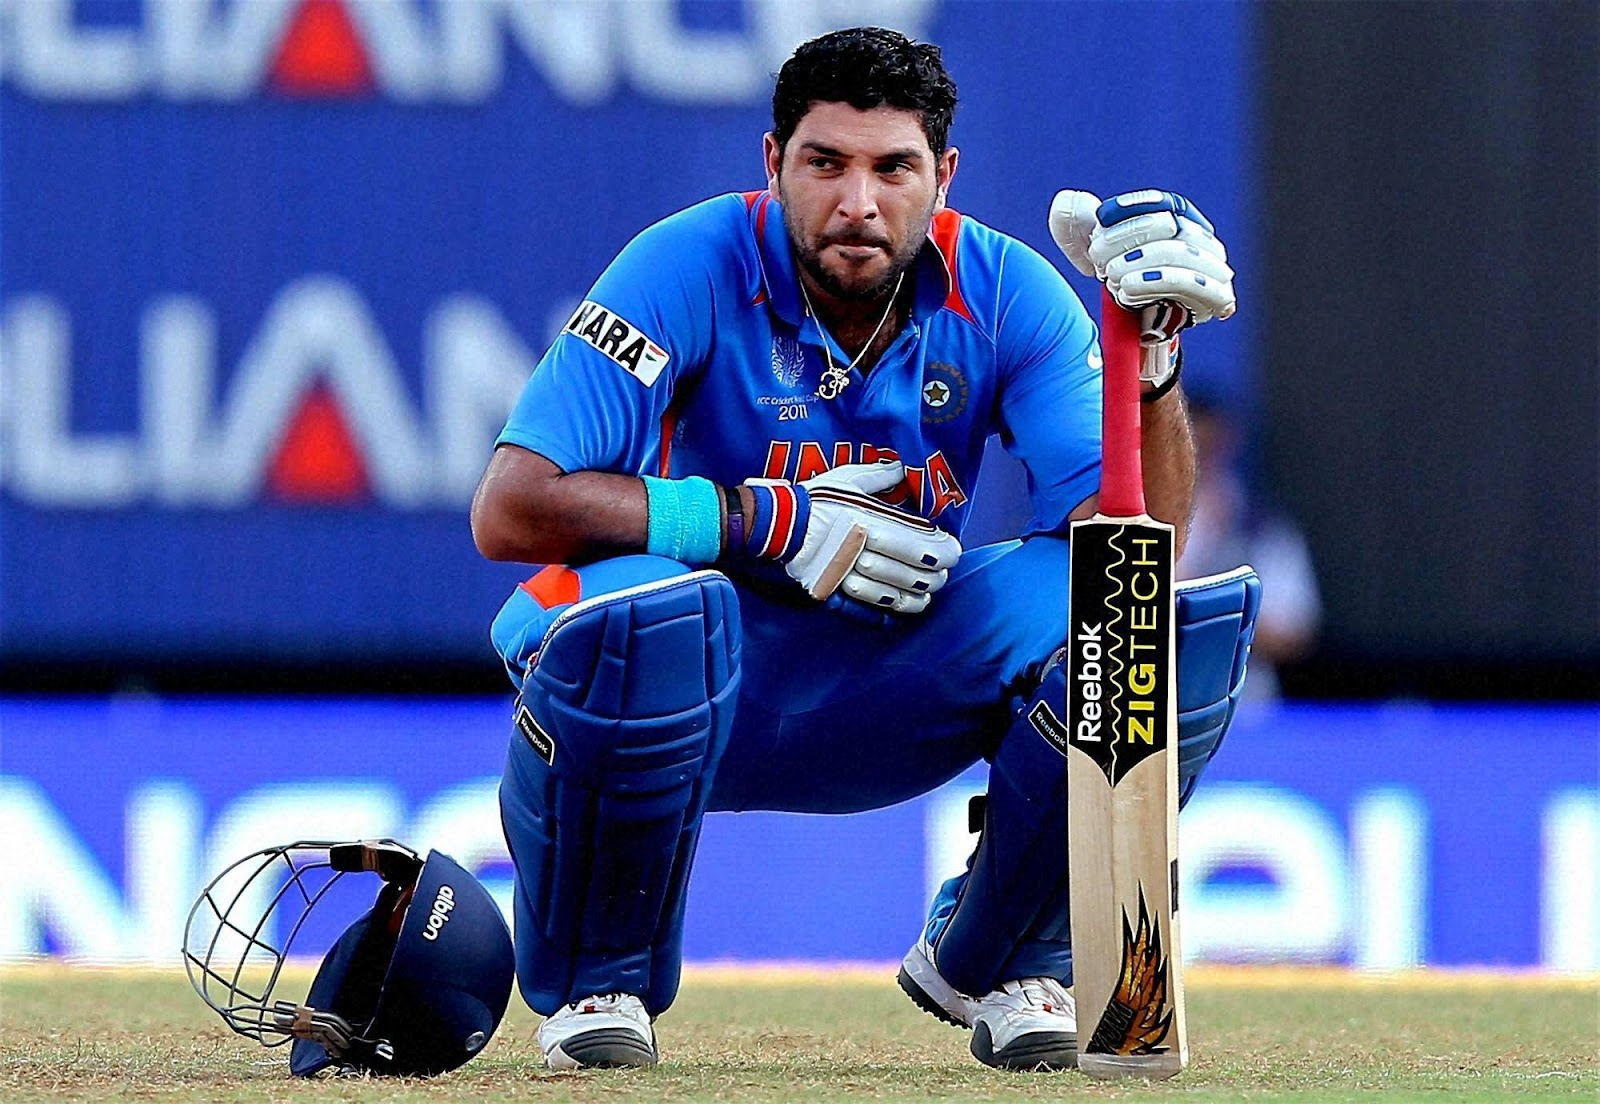 Image result for Yuvraj singh first test match photo